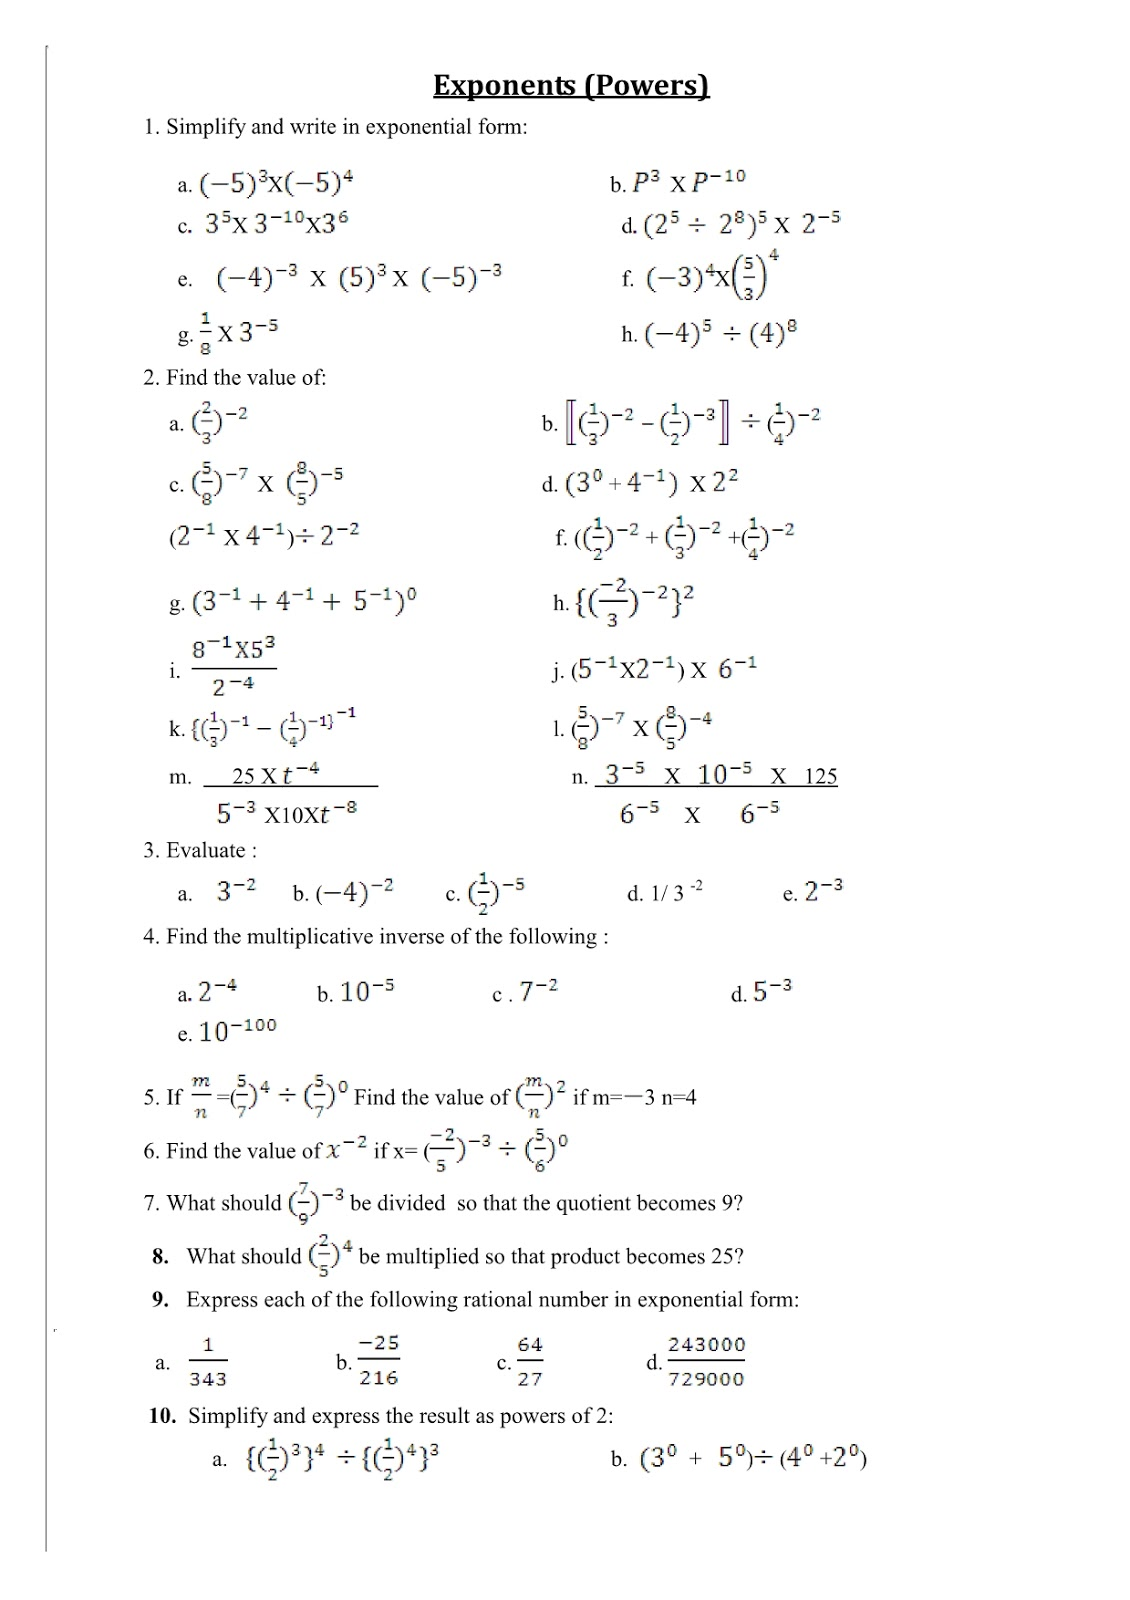 Powers and exponents worksheets 5th grade